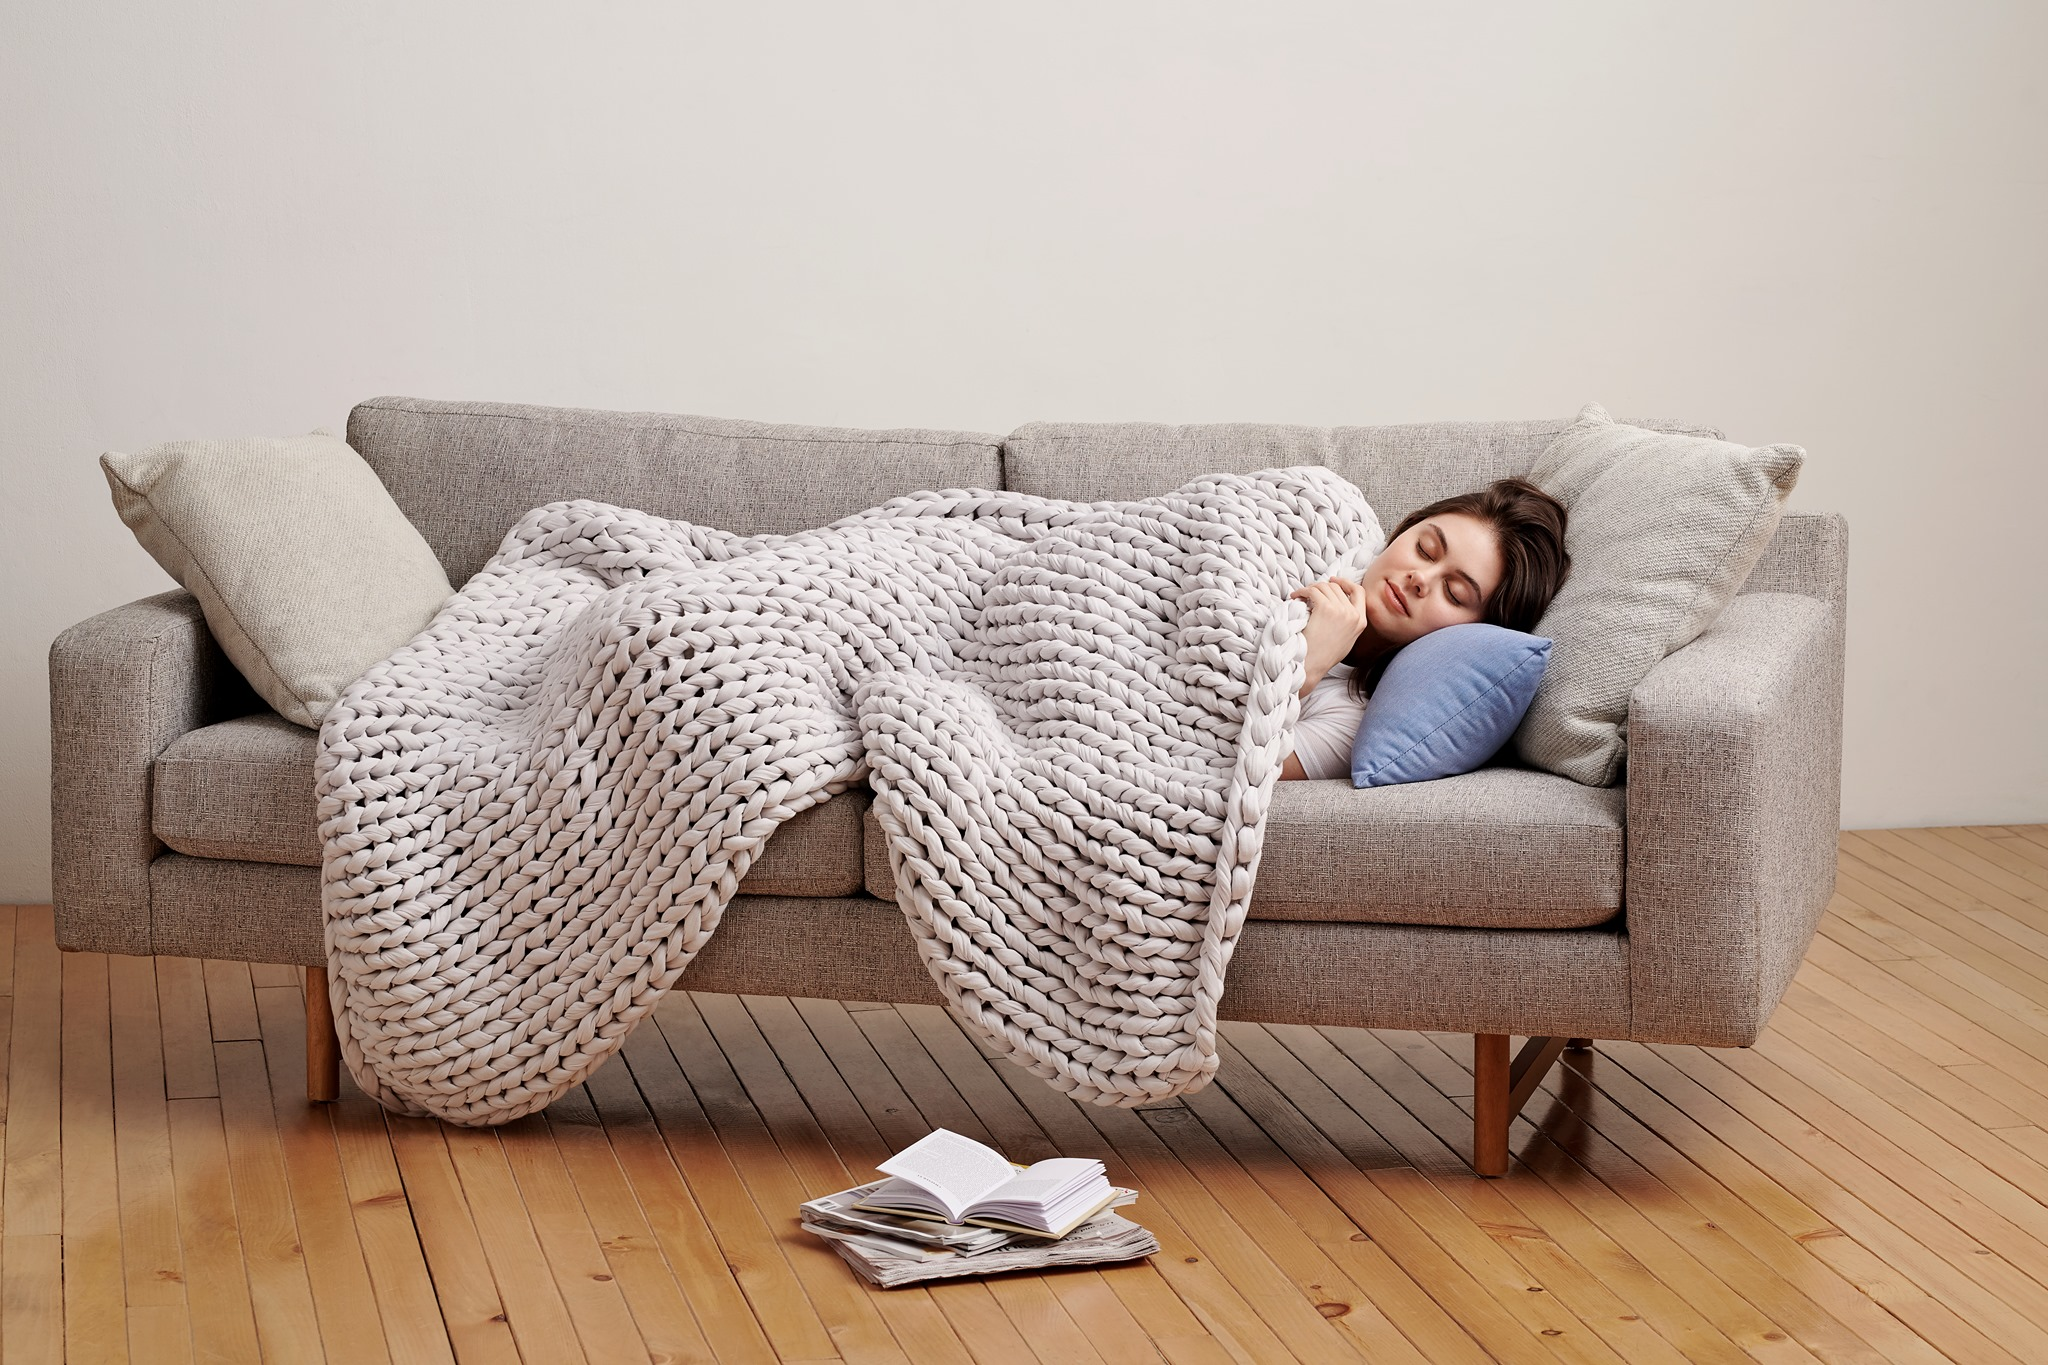 cool blankets for stress relief and better sleep